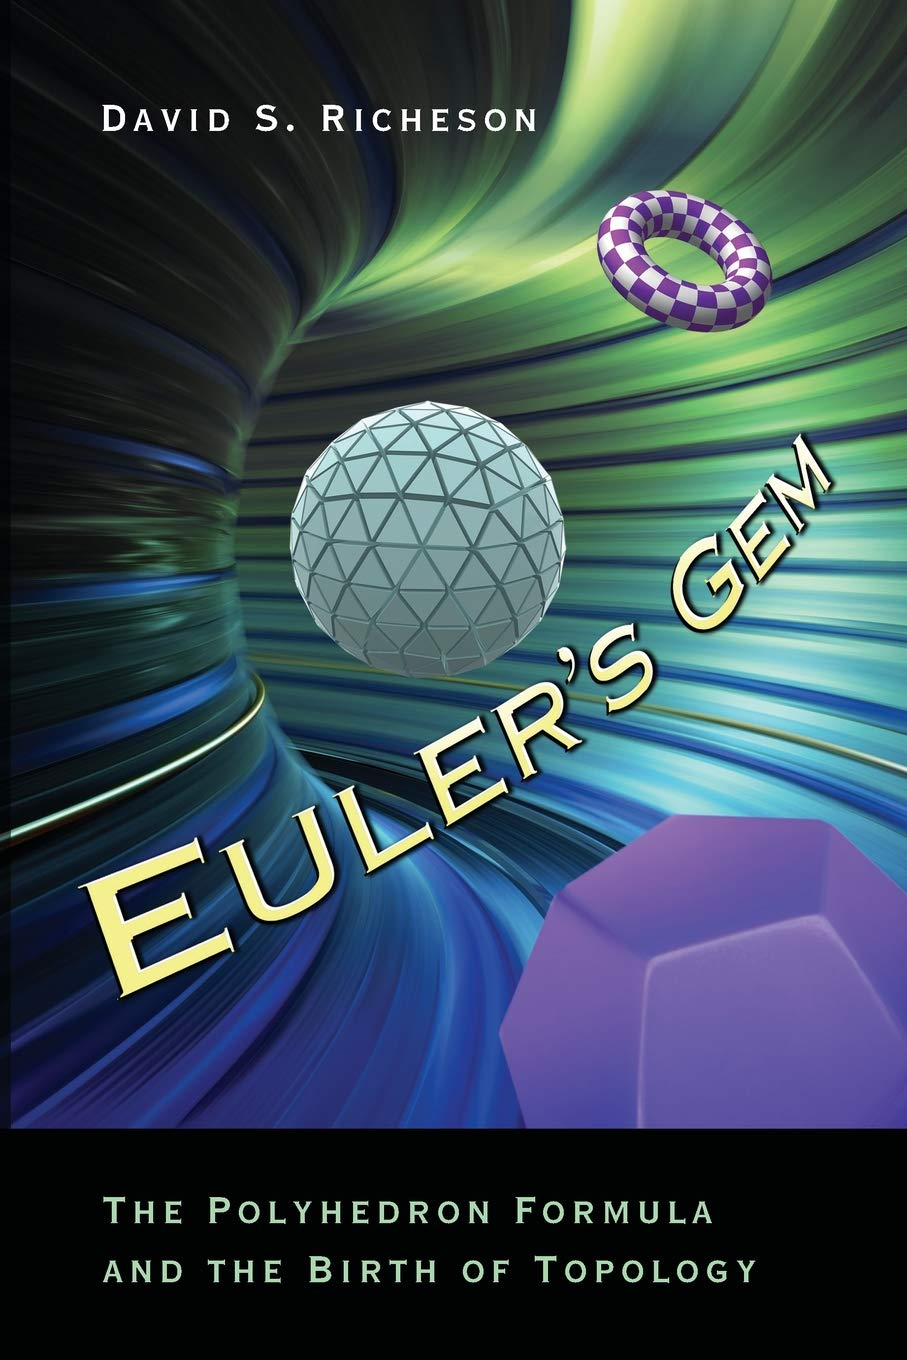 Eulers Gem The Polyhedron Formula and the Birth of Topology